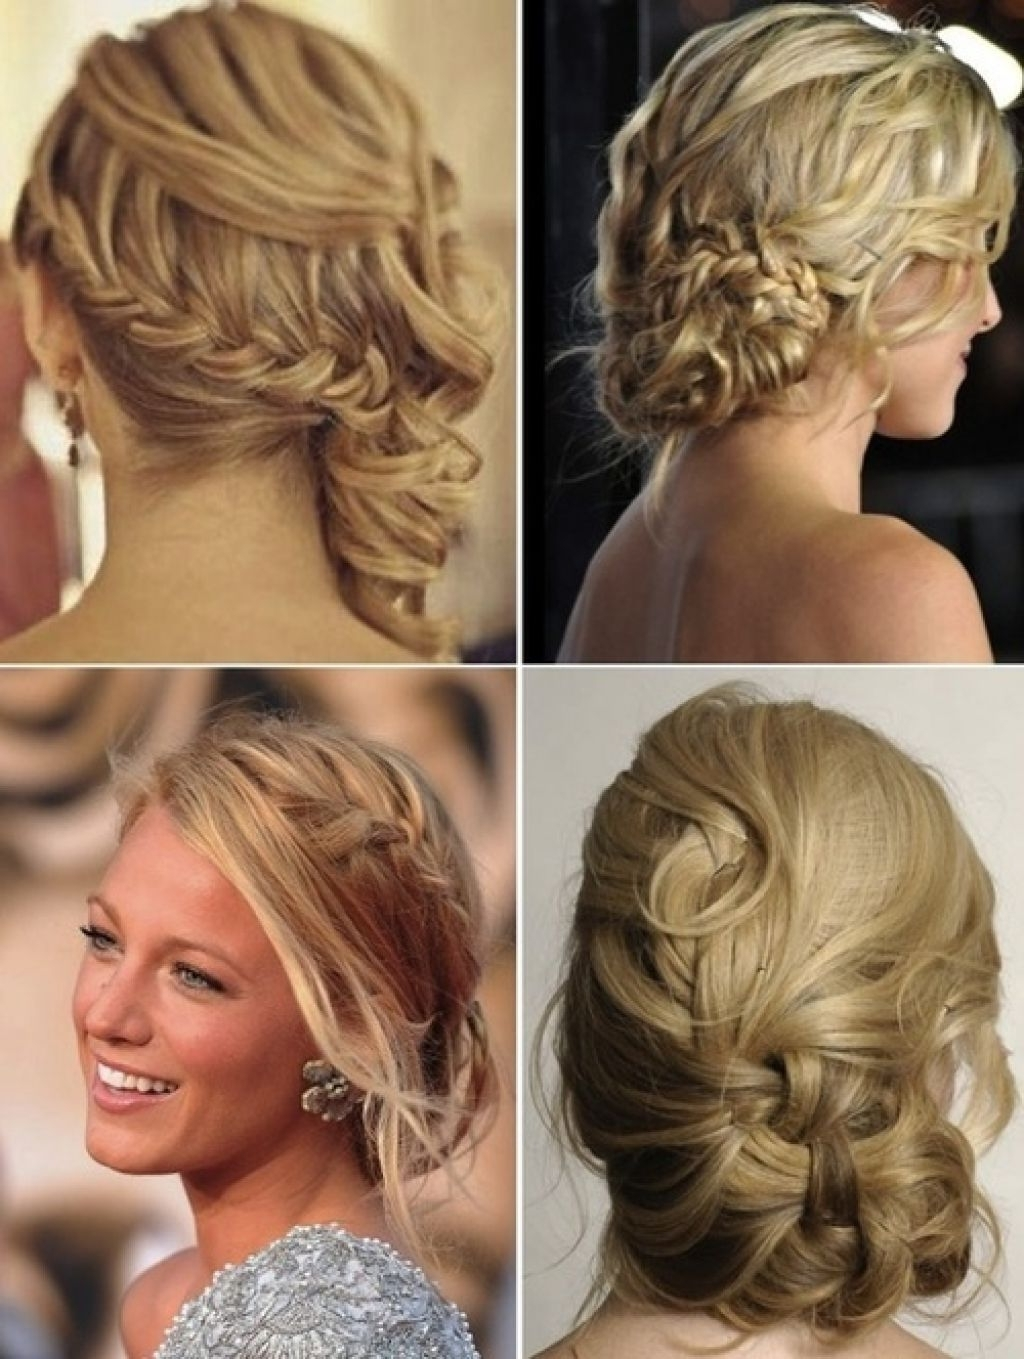 Casual Wedding Hairstyles For Long Hair – Hairstyle For Women & Man In Famous Casual Wedding Hairstyles (View 3 of 15)